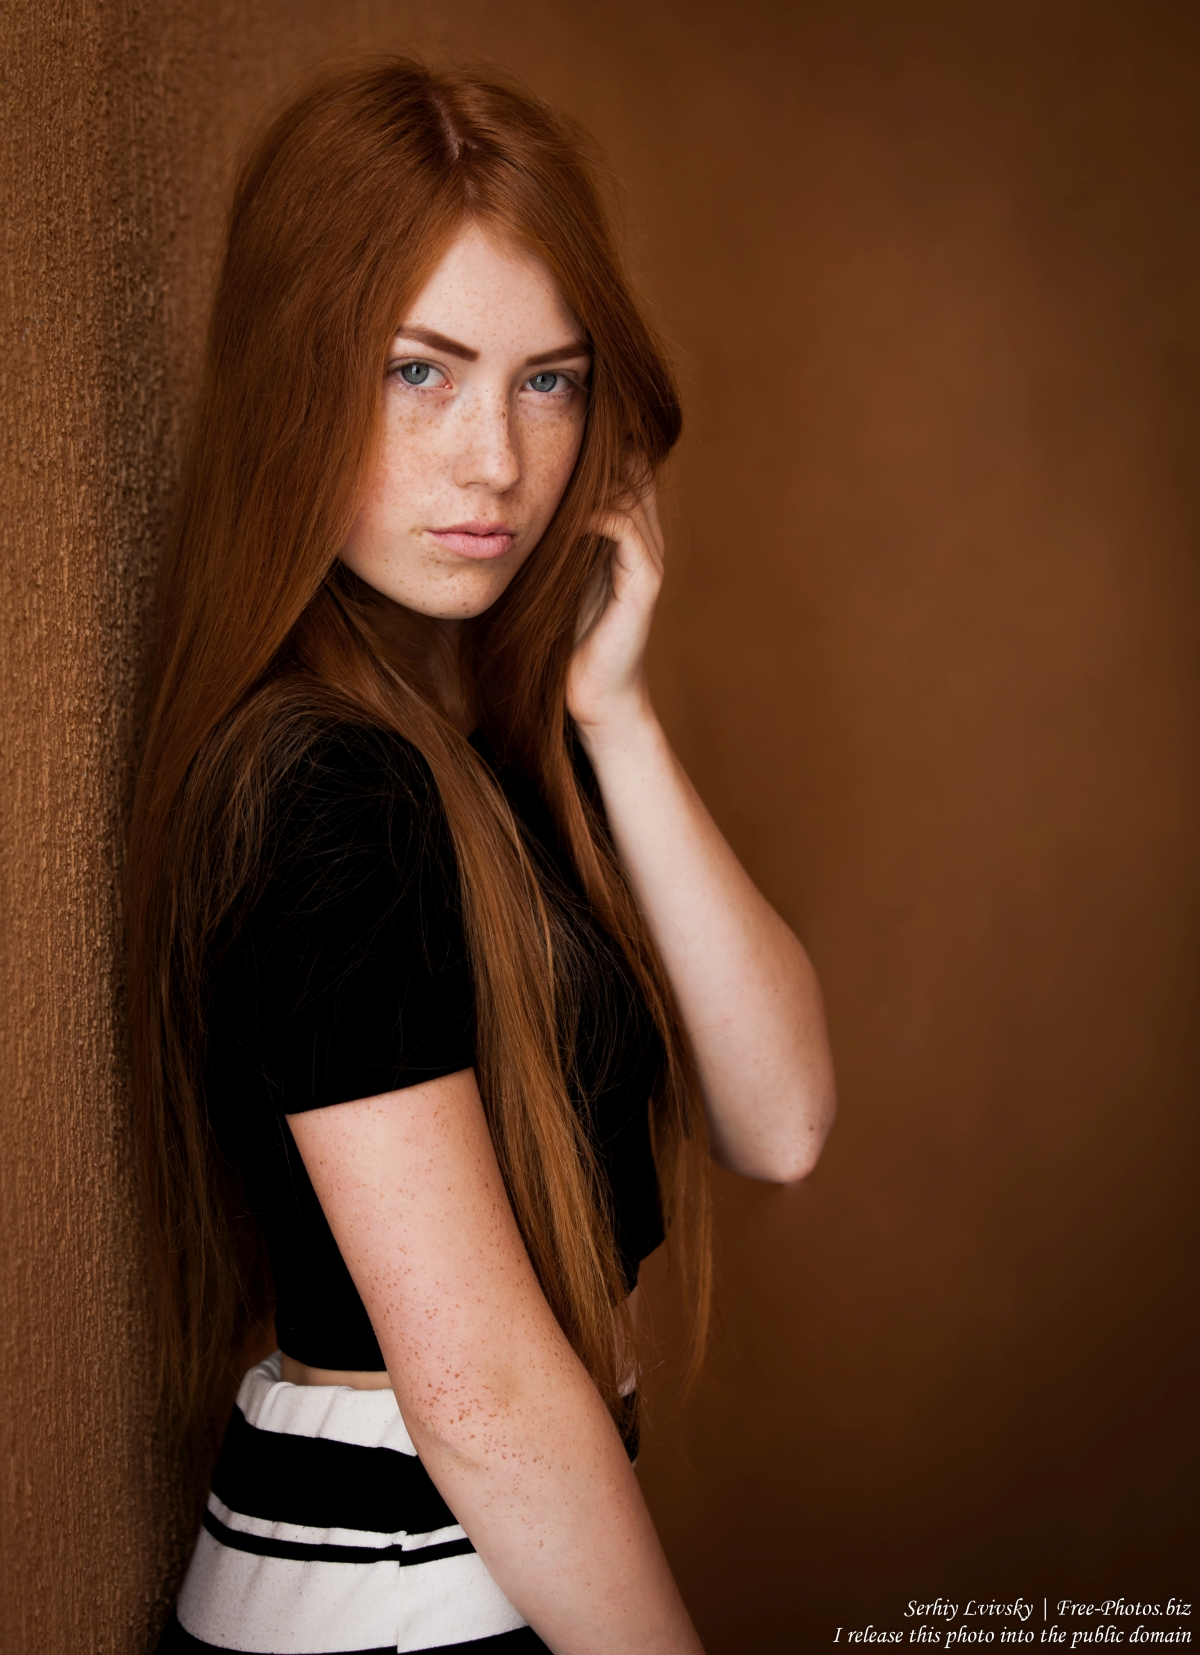 a_15-year-old_red-haired_catholic_girl_photographed_by_serhiy_lvivsky_in_august_2015_18